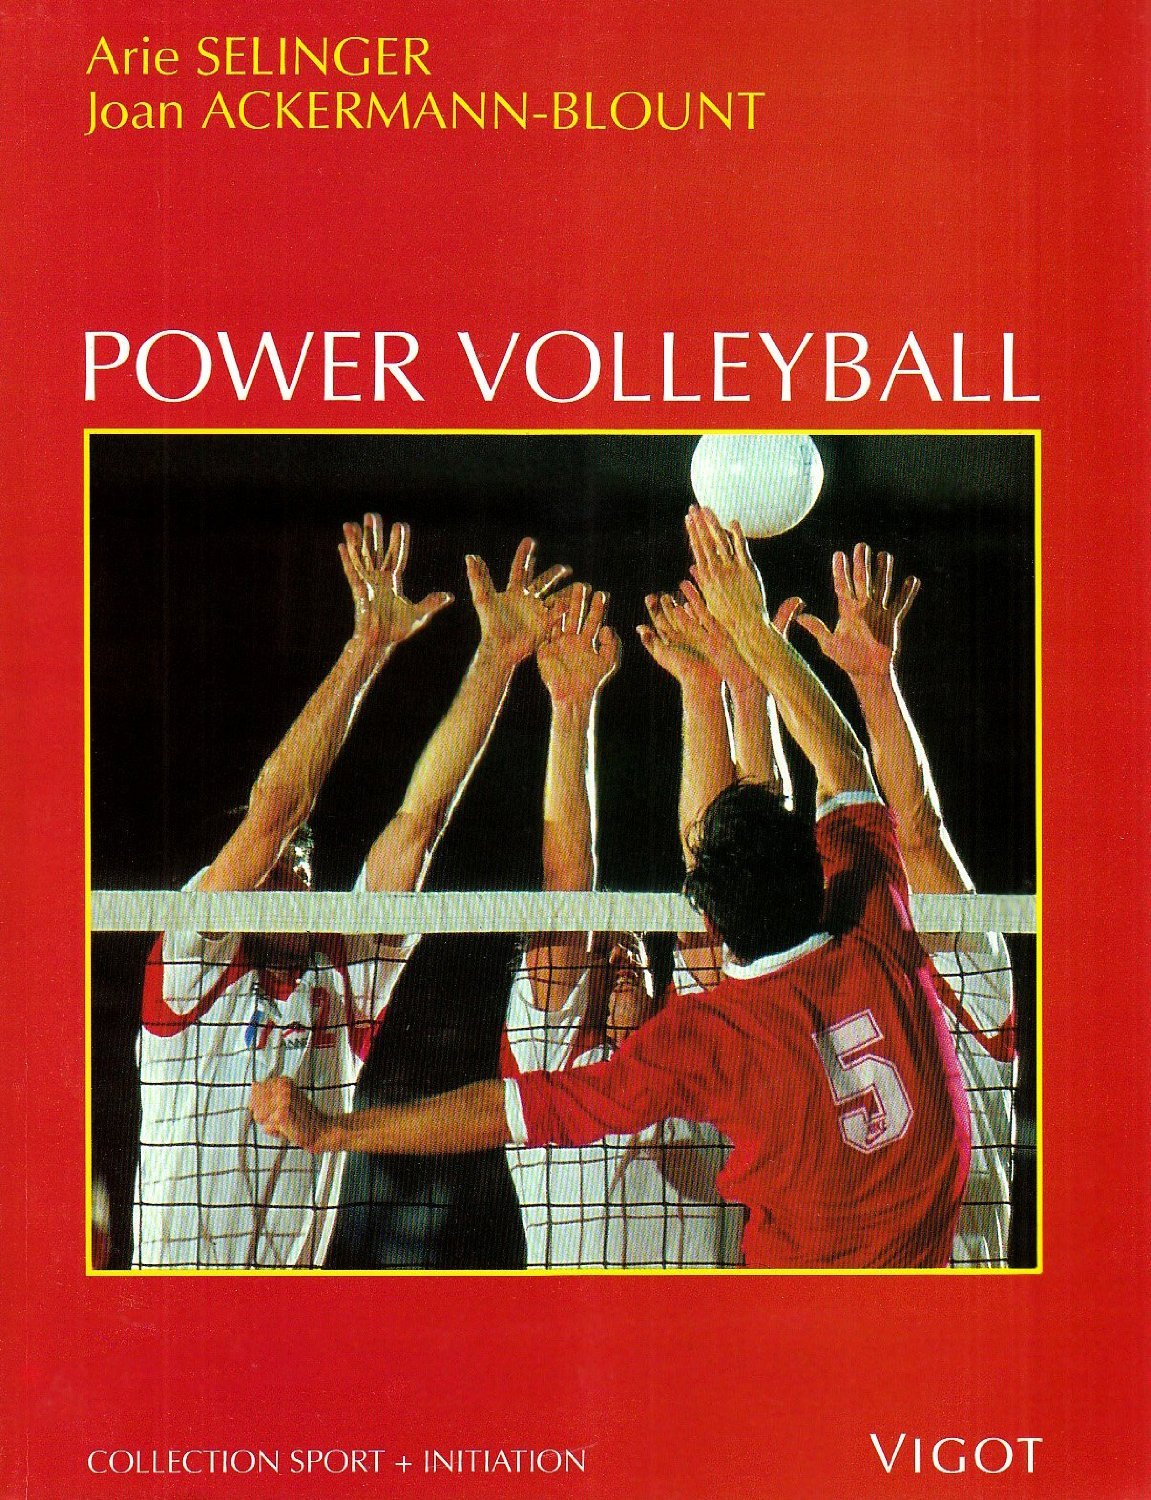 POWER VOLLEY BALL